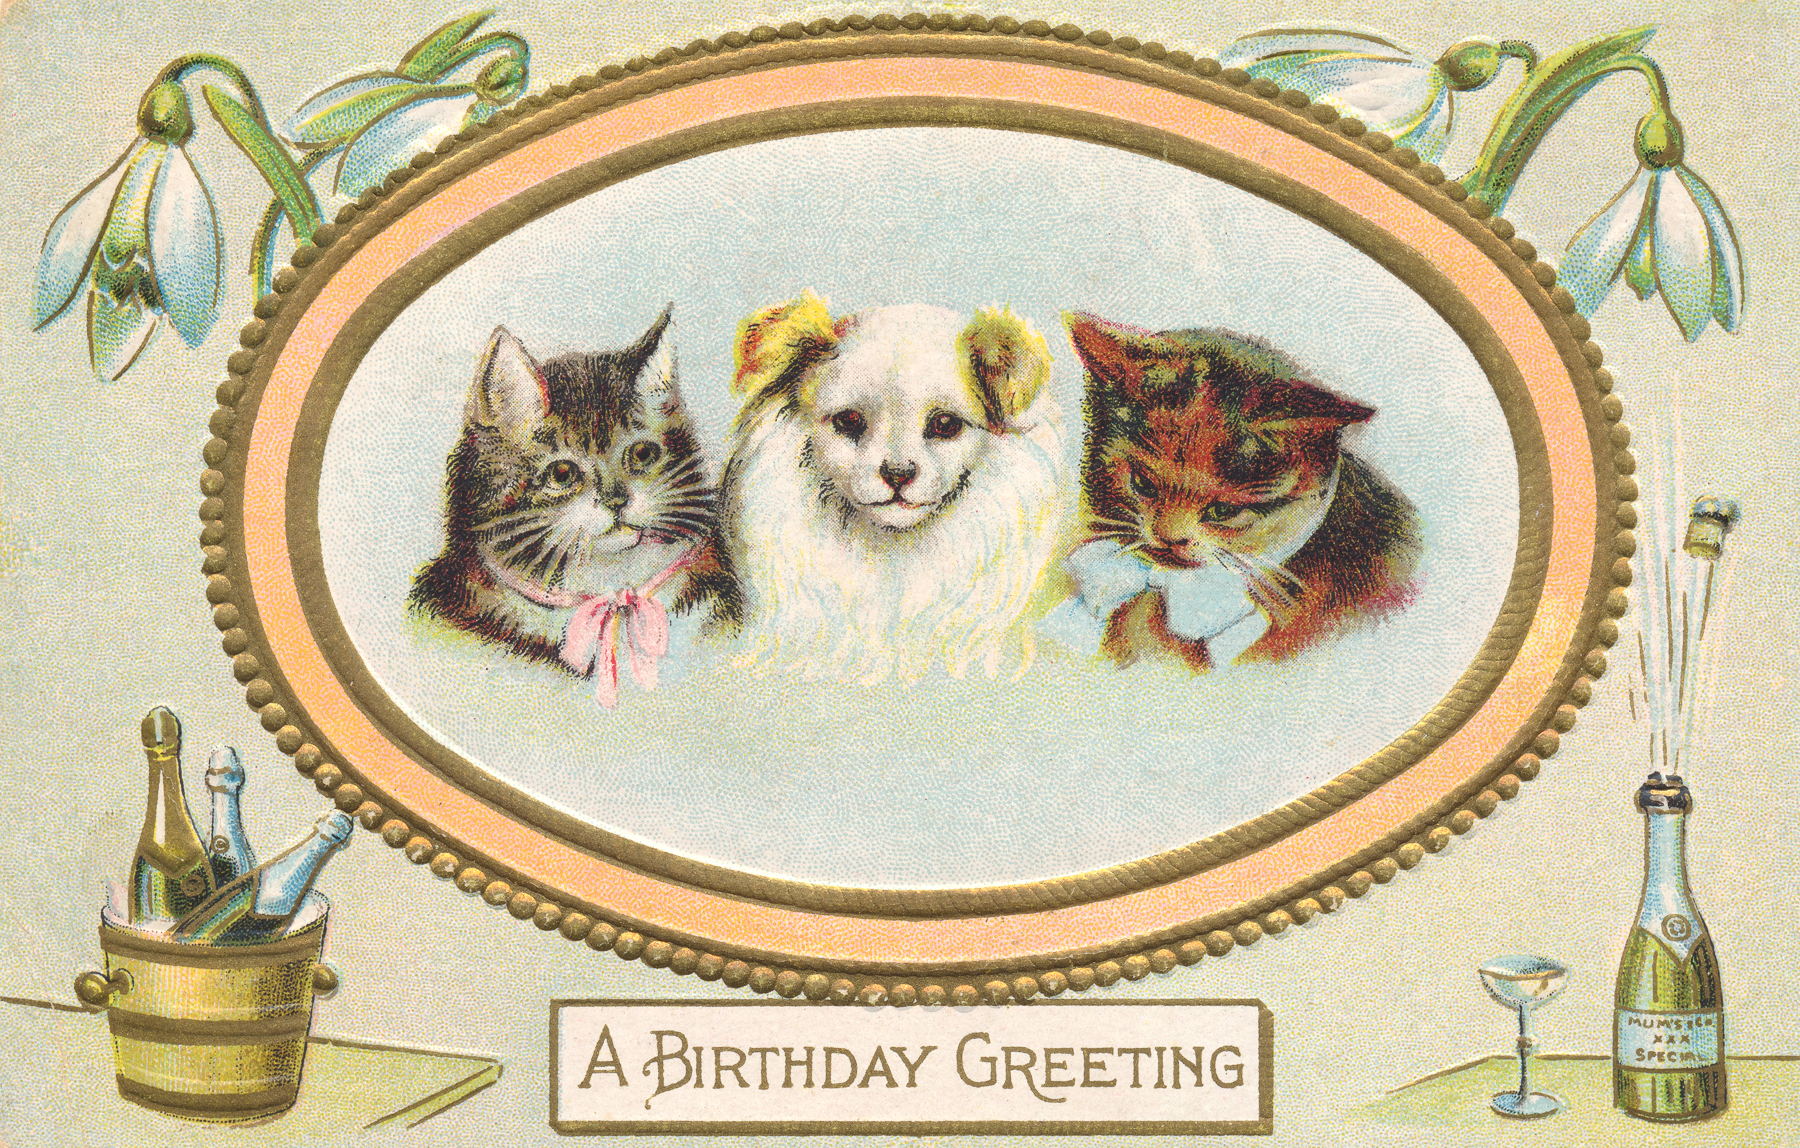 Birthday greeting card - circa 1910s photo